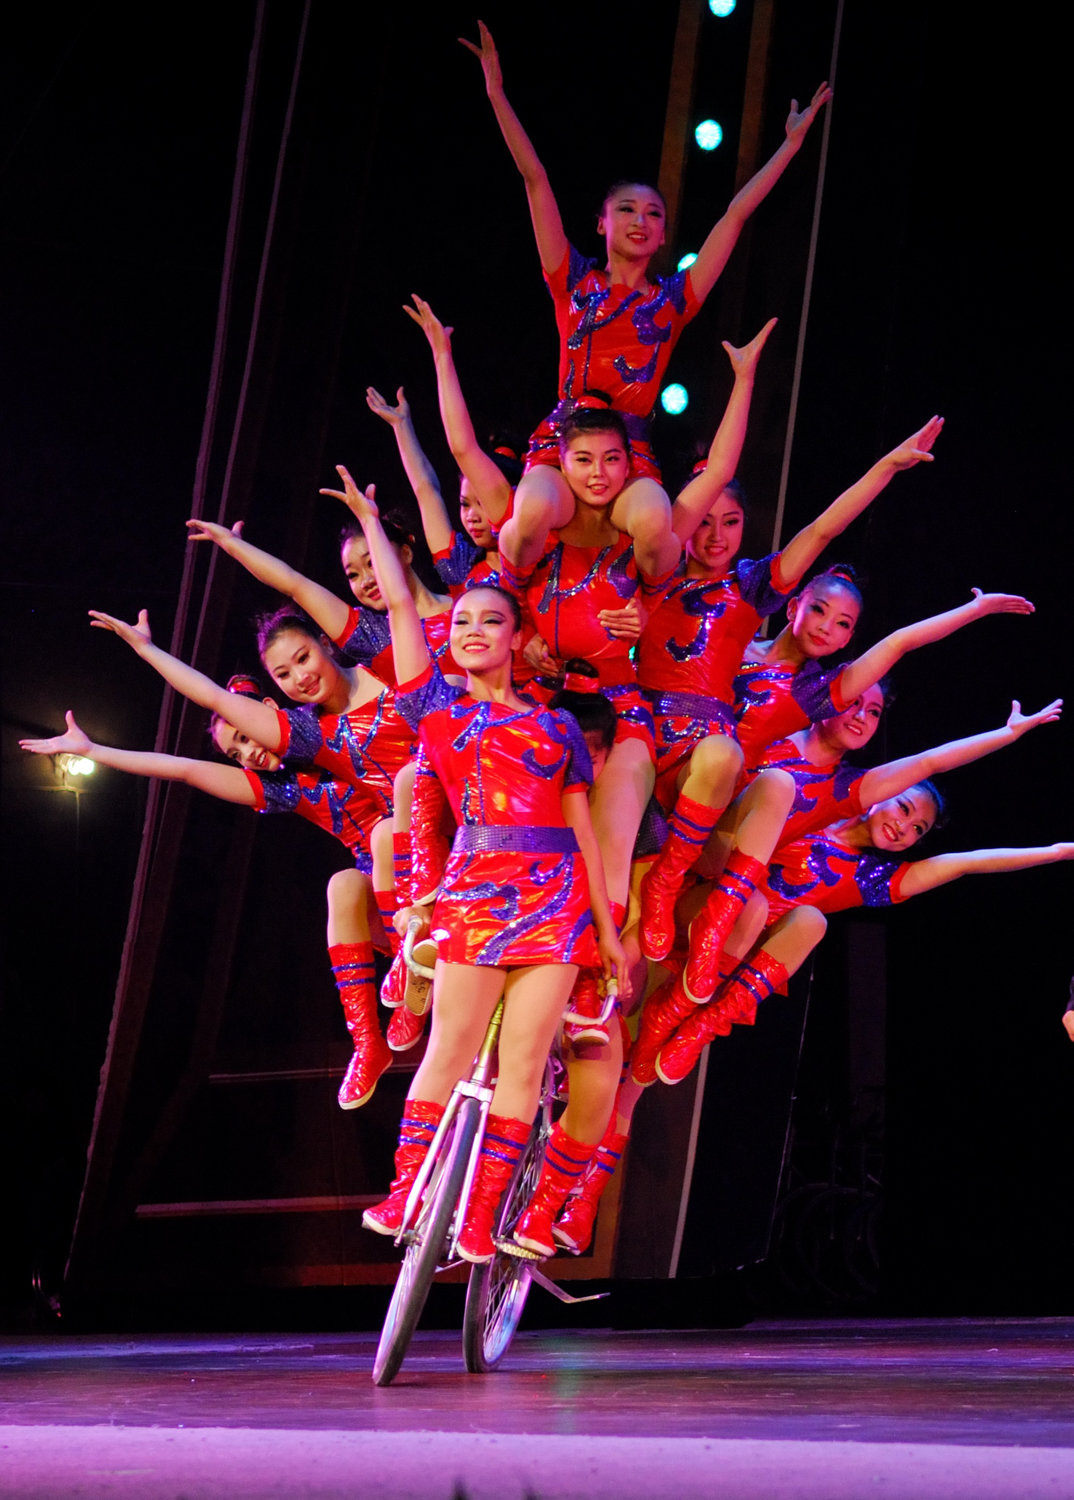 'Cirque Mei' will bring its blend of traditional and contemporary Chinese circus acts to the Lehman Center for the Performing Arts on Oct. 13.